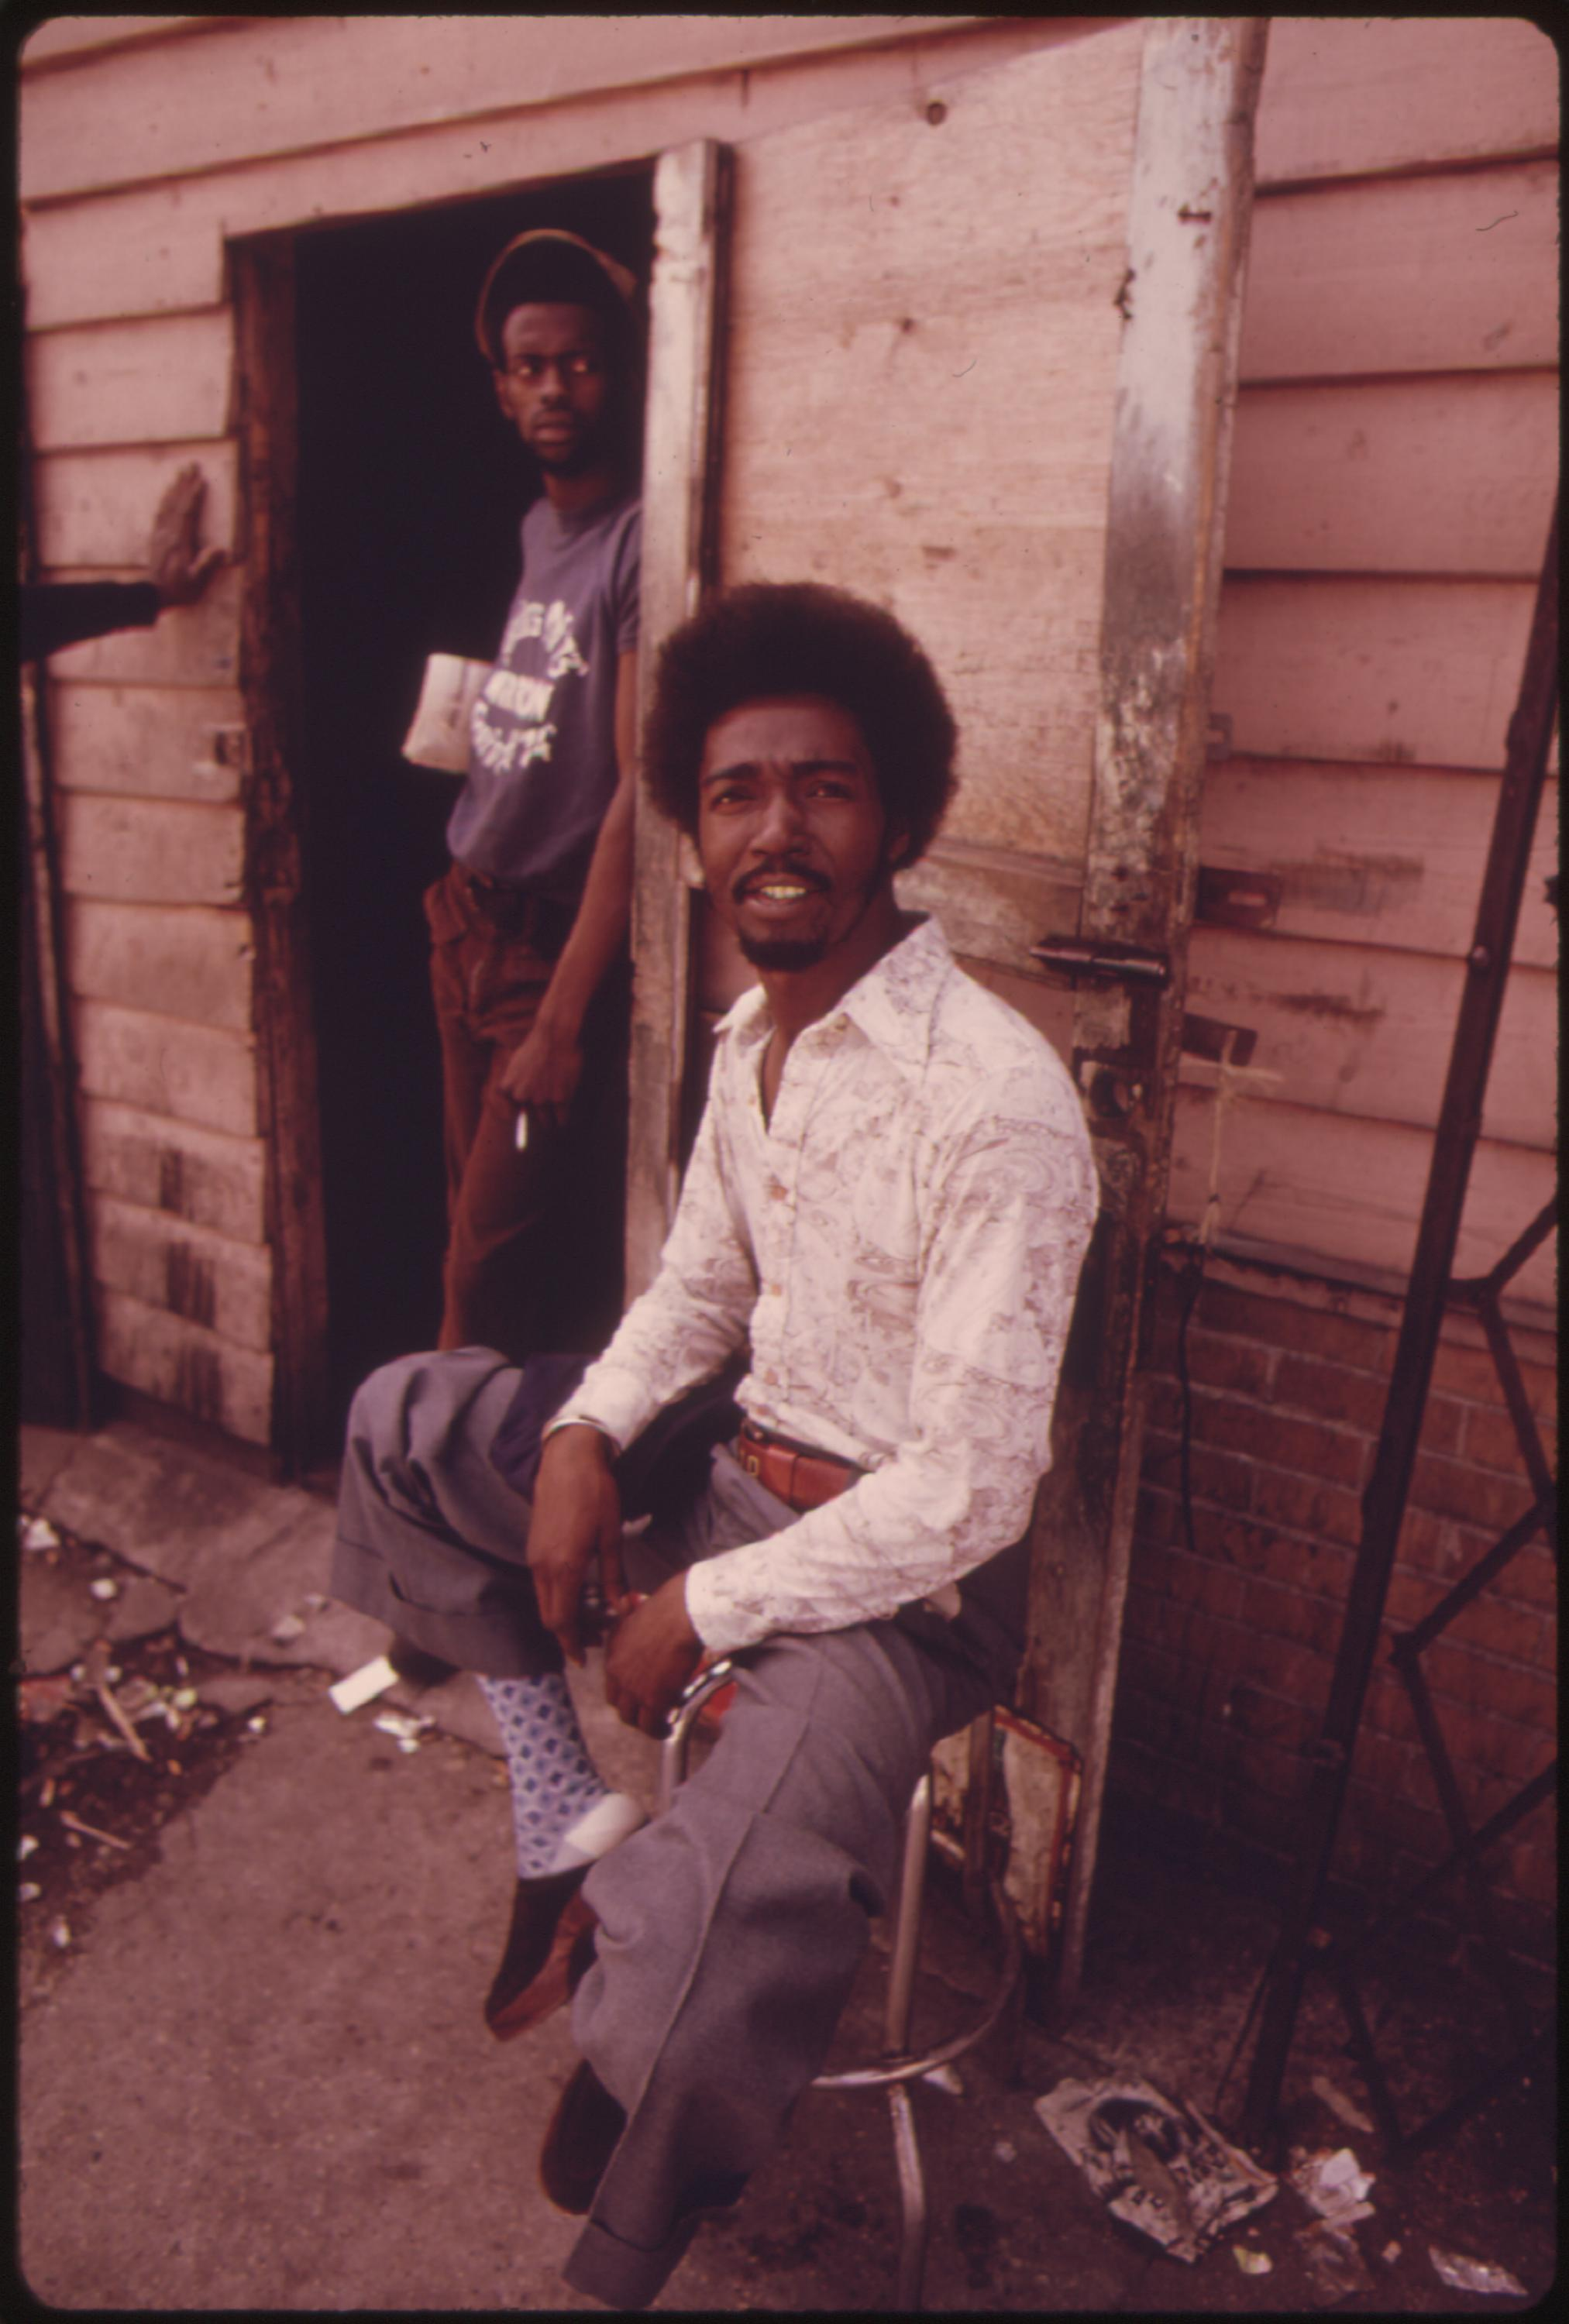 06:1973  Original Caption: Black Men At The Entrance To A Pool Hall Where They Hang Around Daily, Located On Roosevelt Road In The Heart Of The Ghetto On Chicago's West Side. John H. White